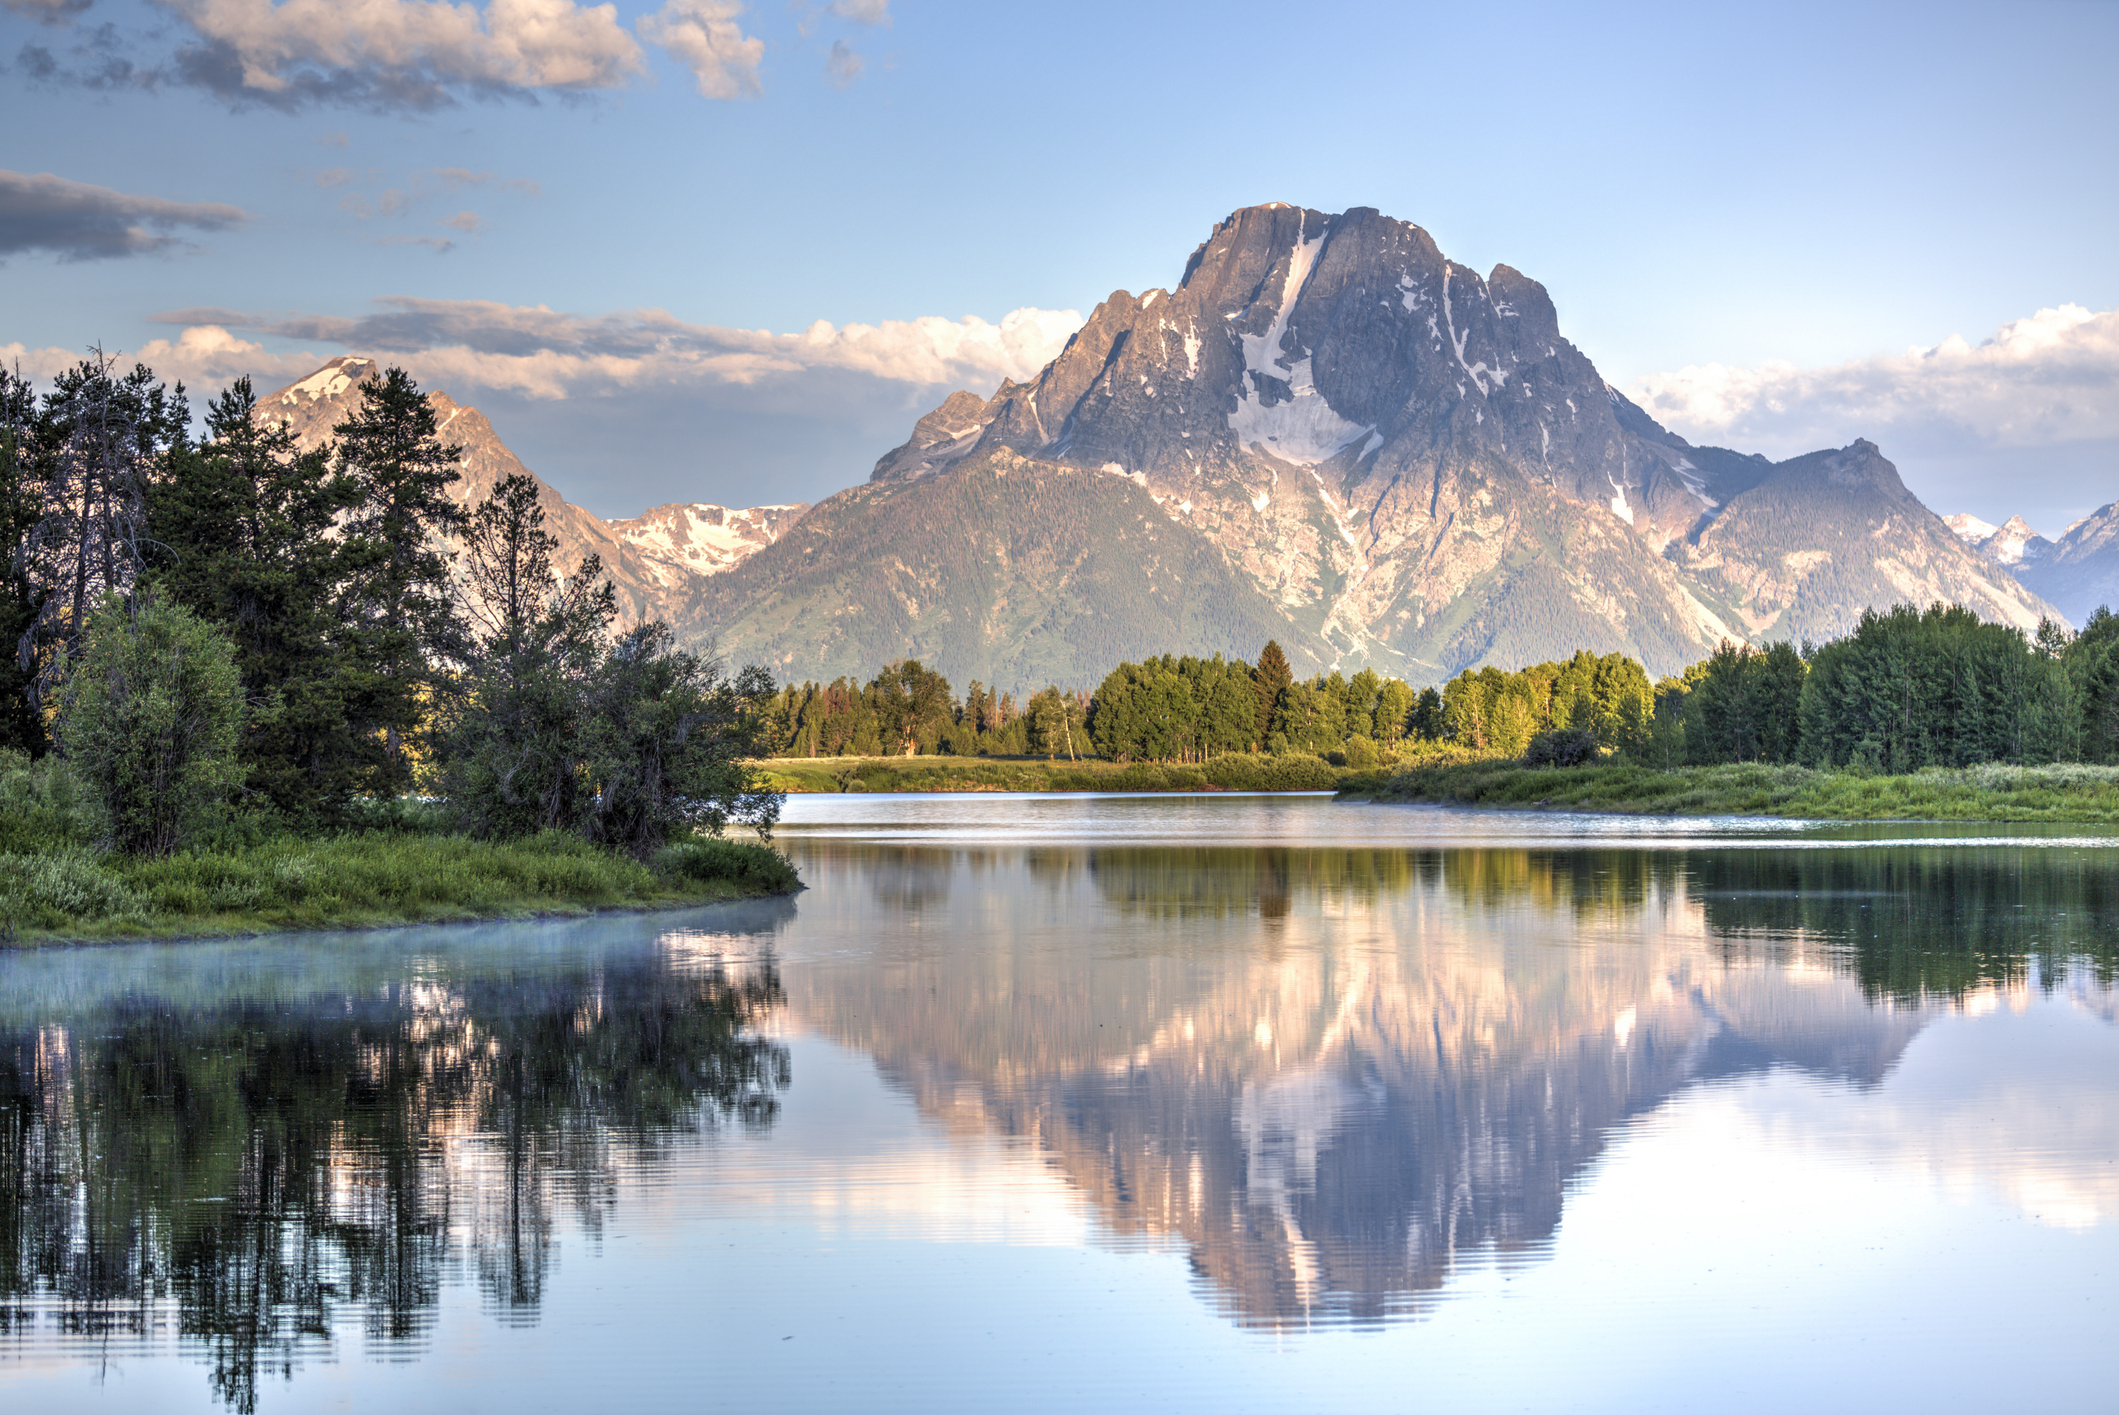 3. Grand Teton National Park (Wyoming)